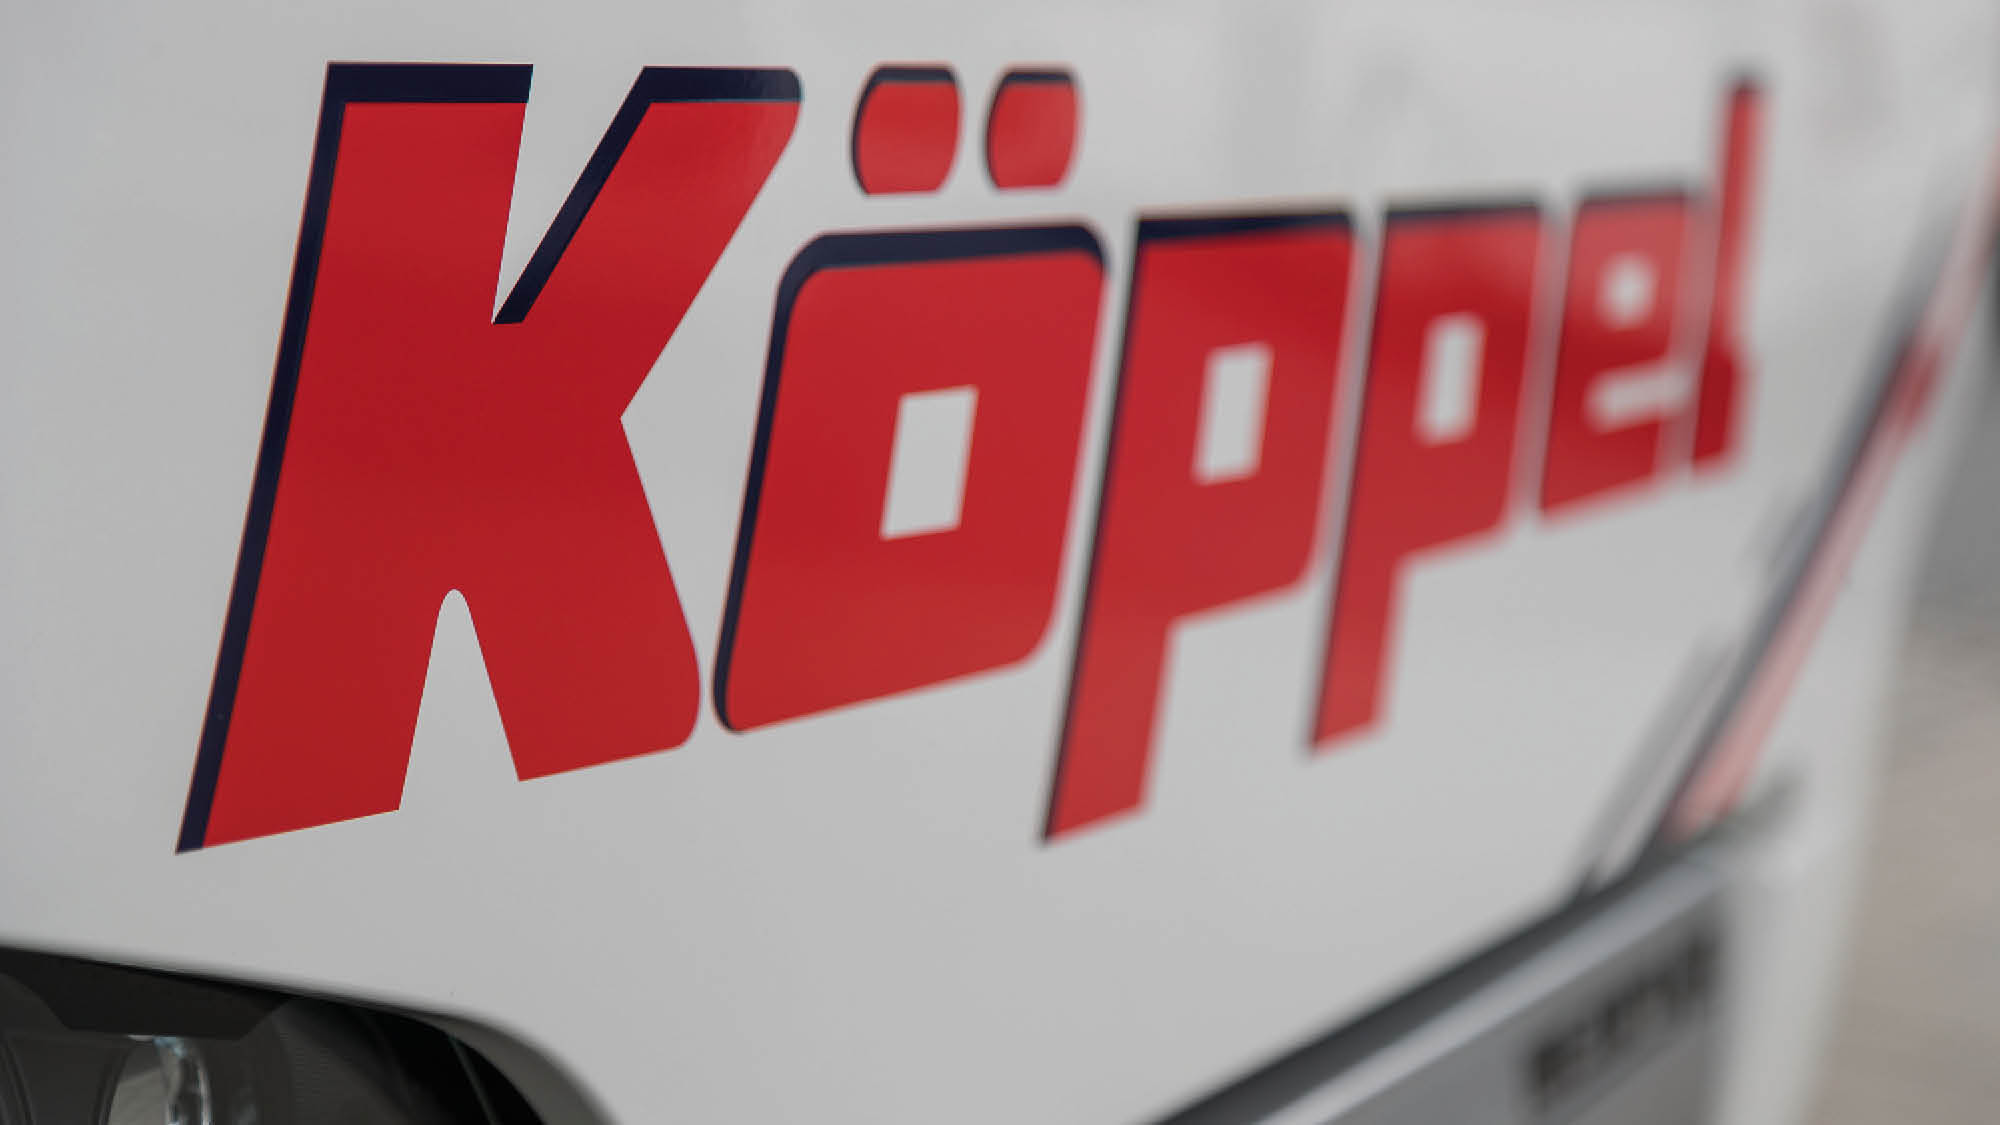 Köppel - Ellwangen - Website - Bus - 2019-12 - 05